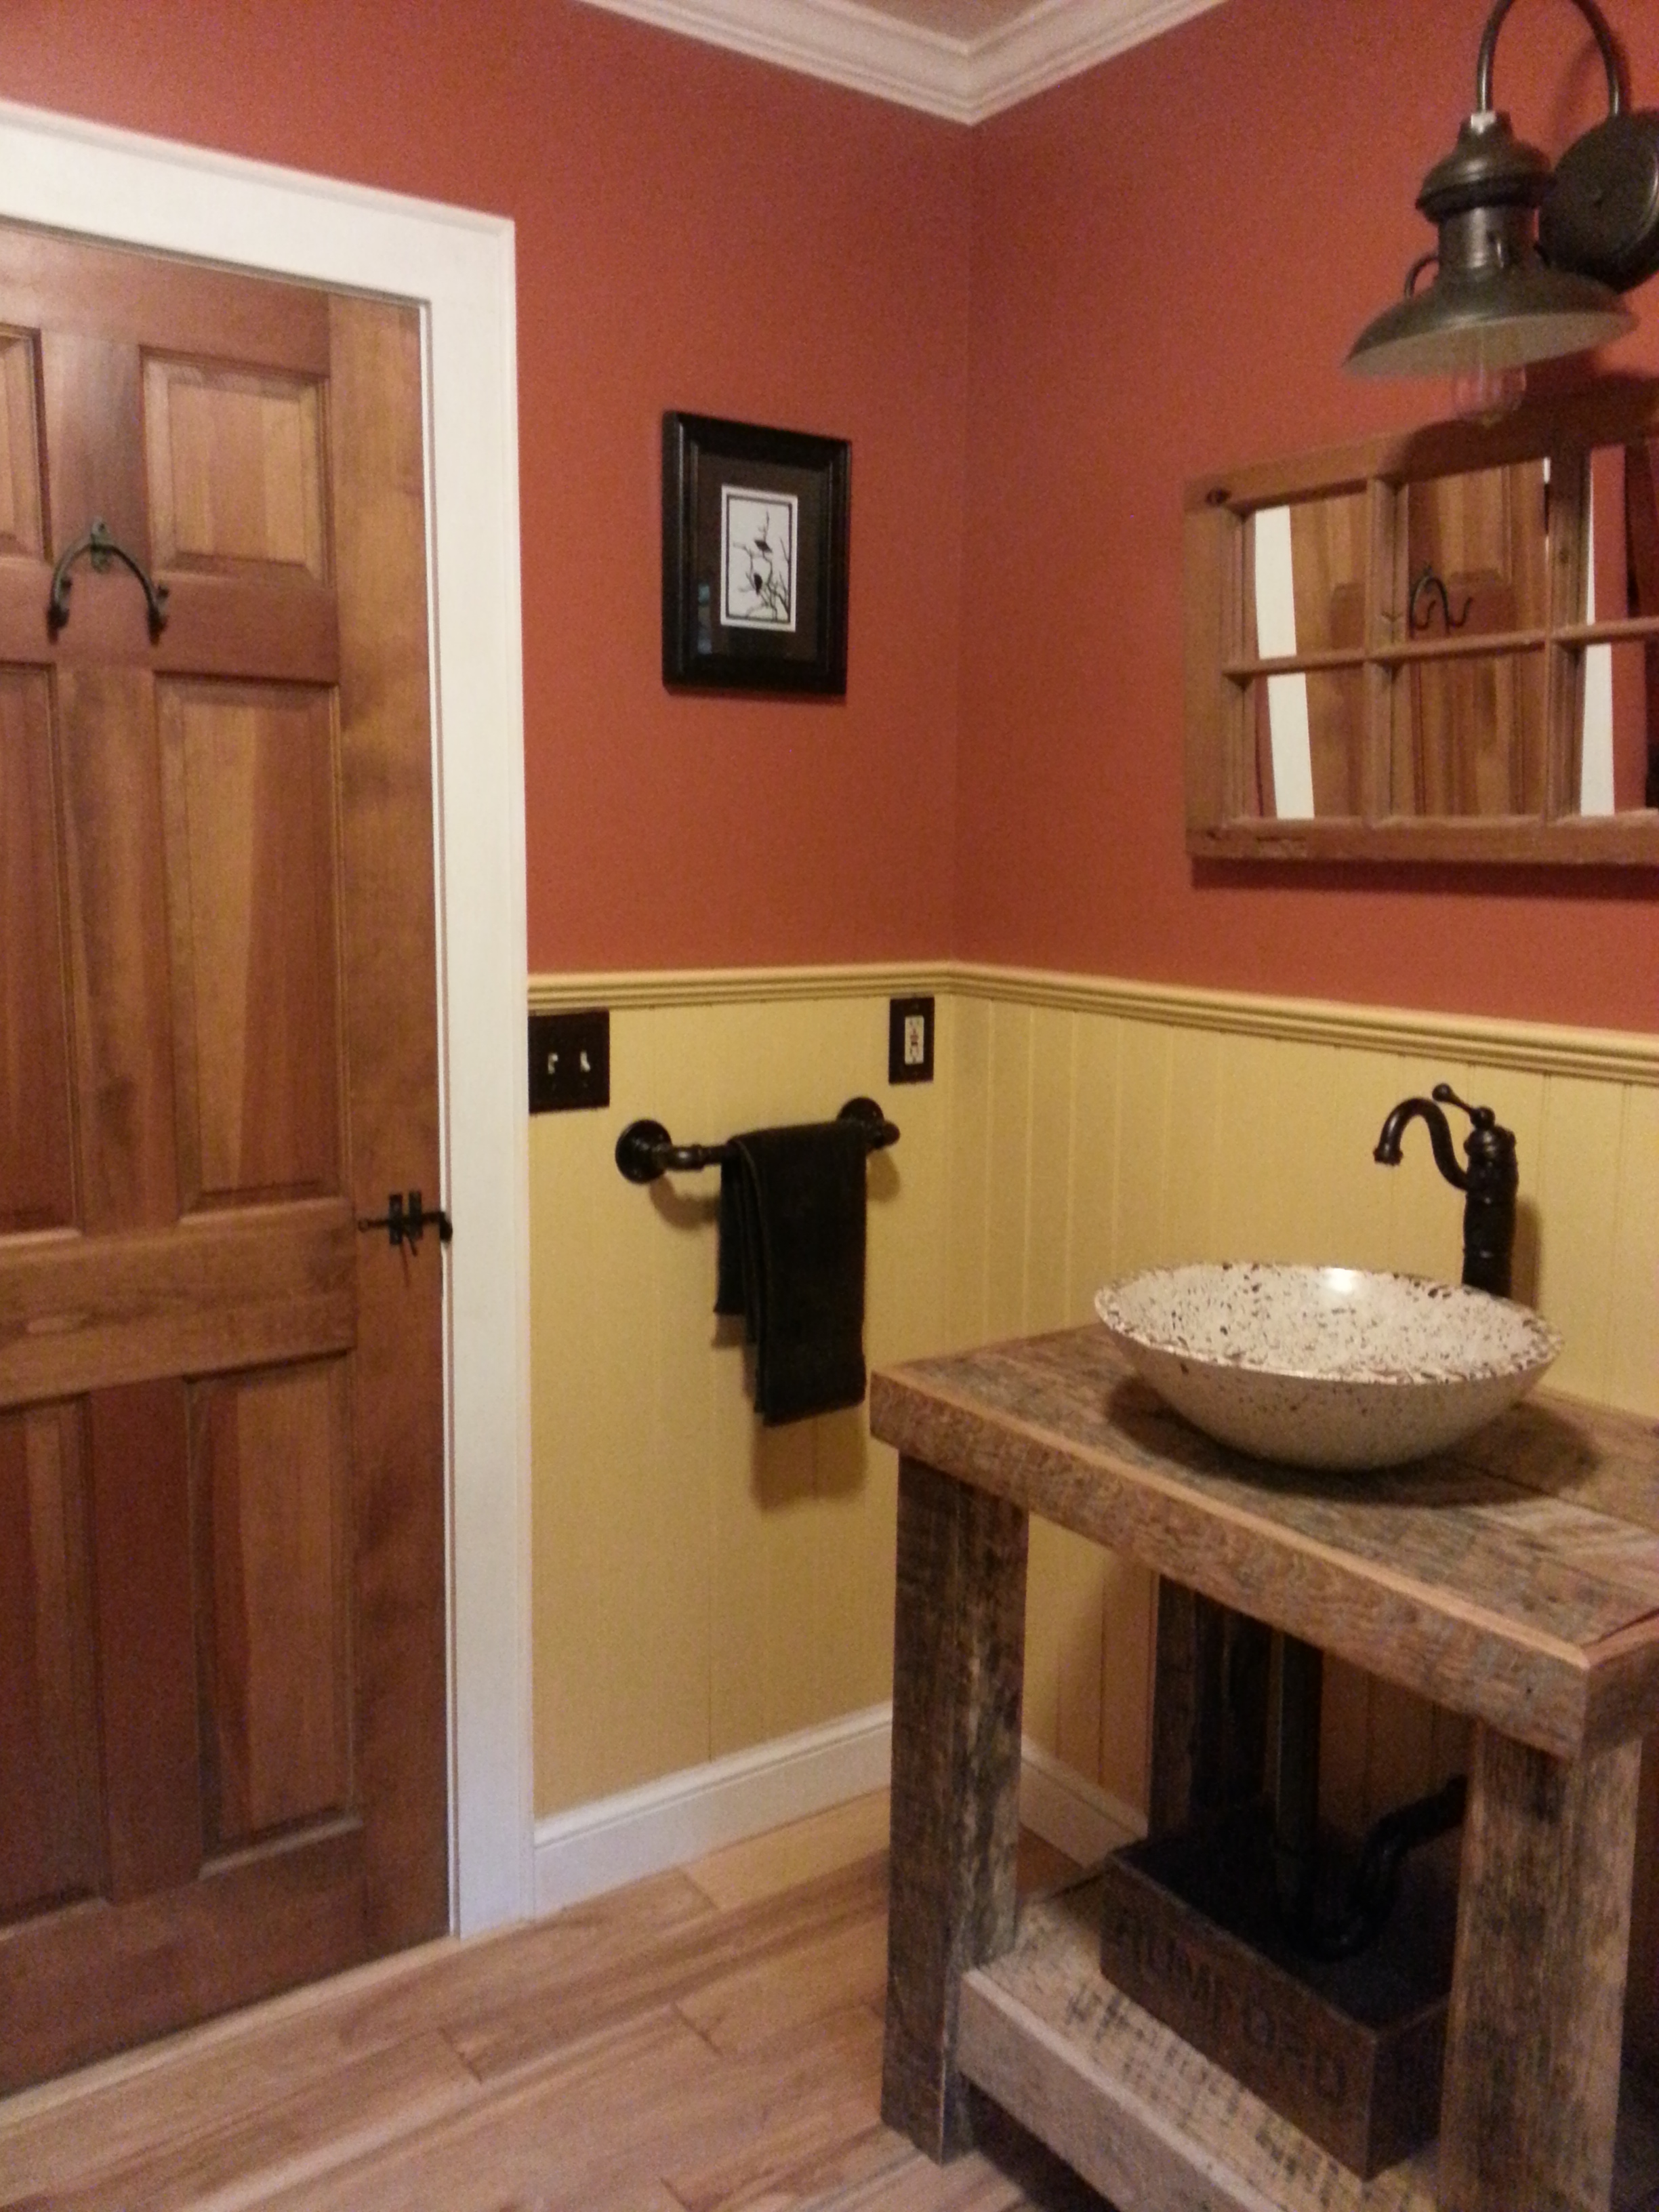 Barn Wall Sconce Adds A Touch Of Country To Bathroom